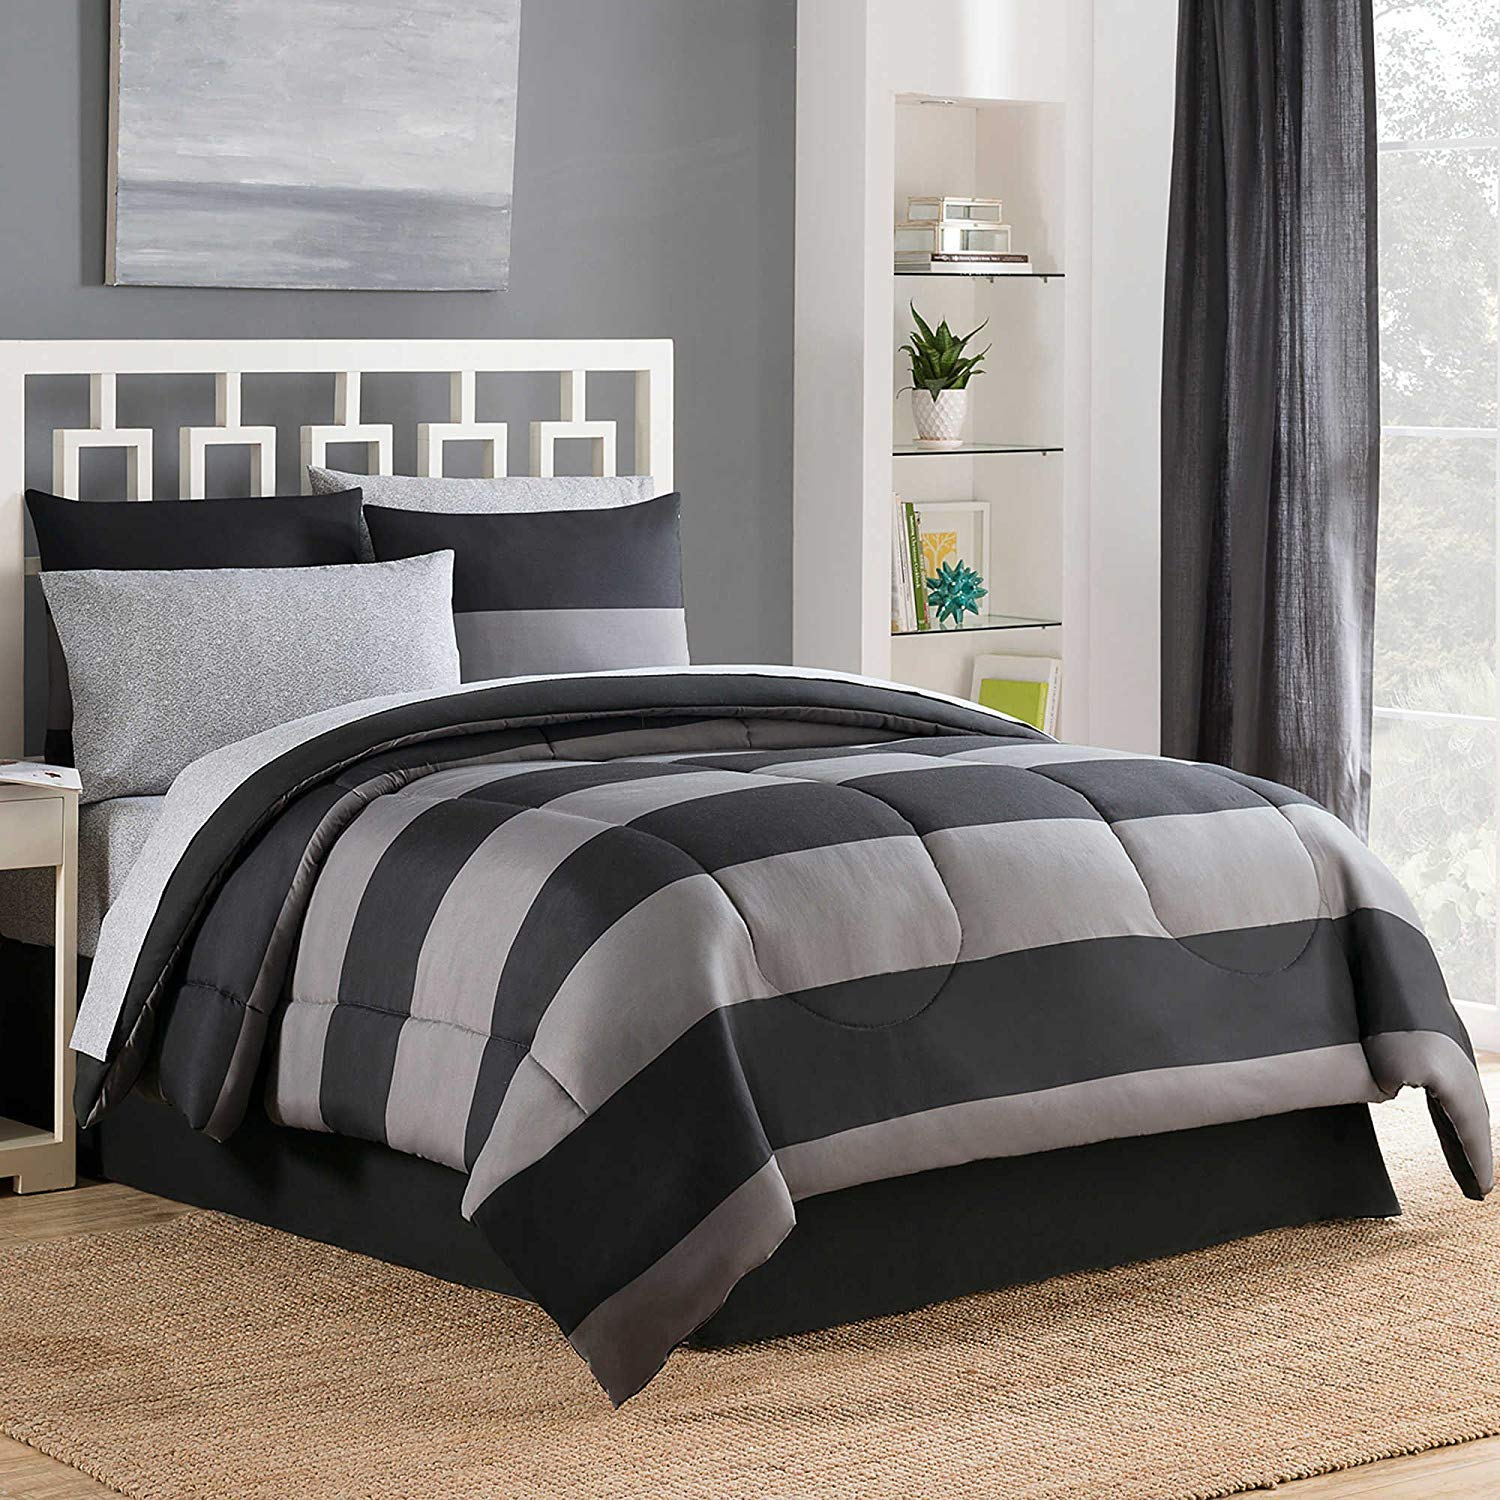 Bryce 8-Piece Reversible Full Comforter Set in Black/Grey